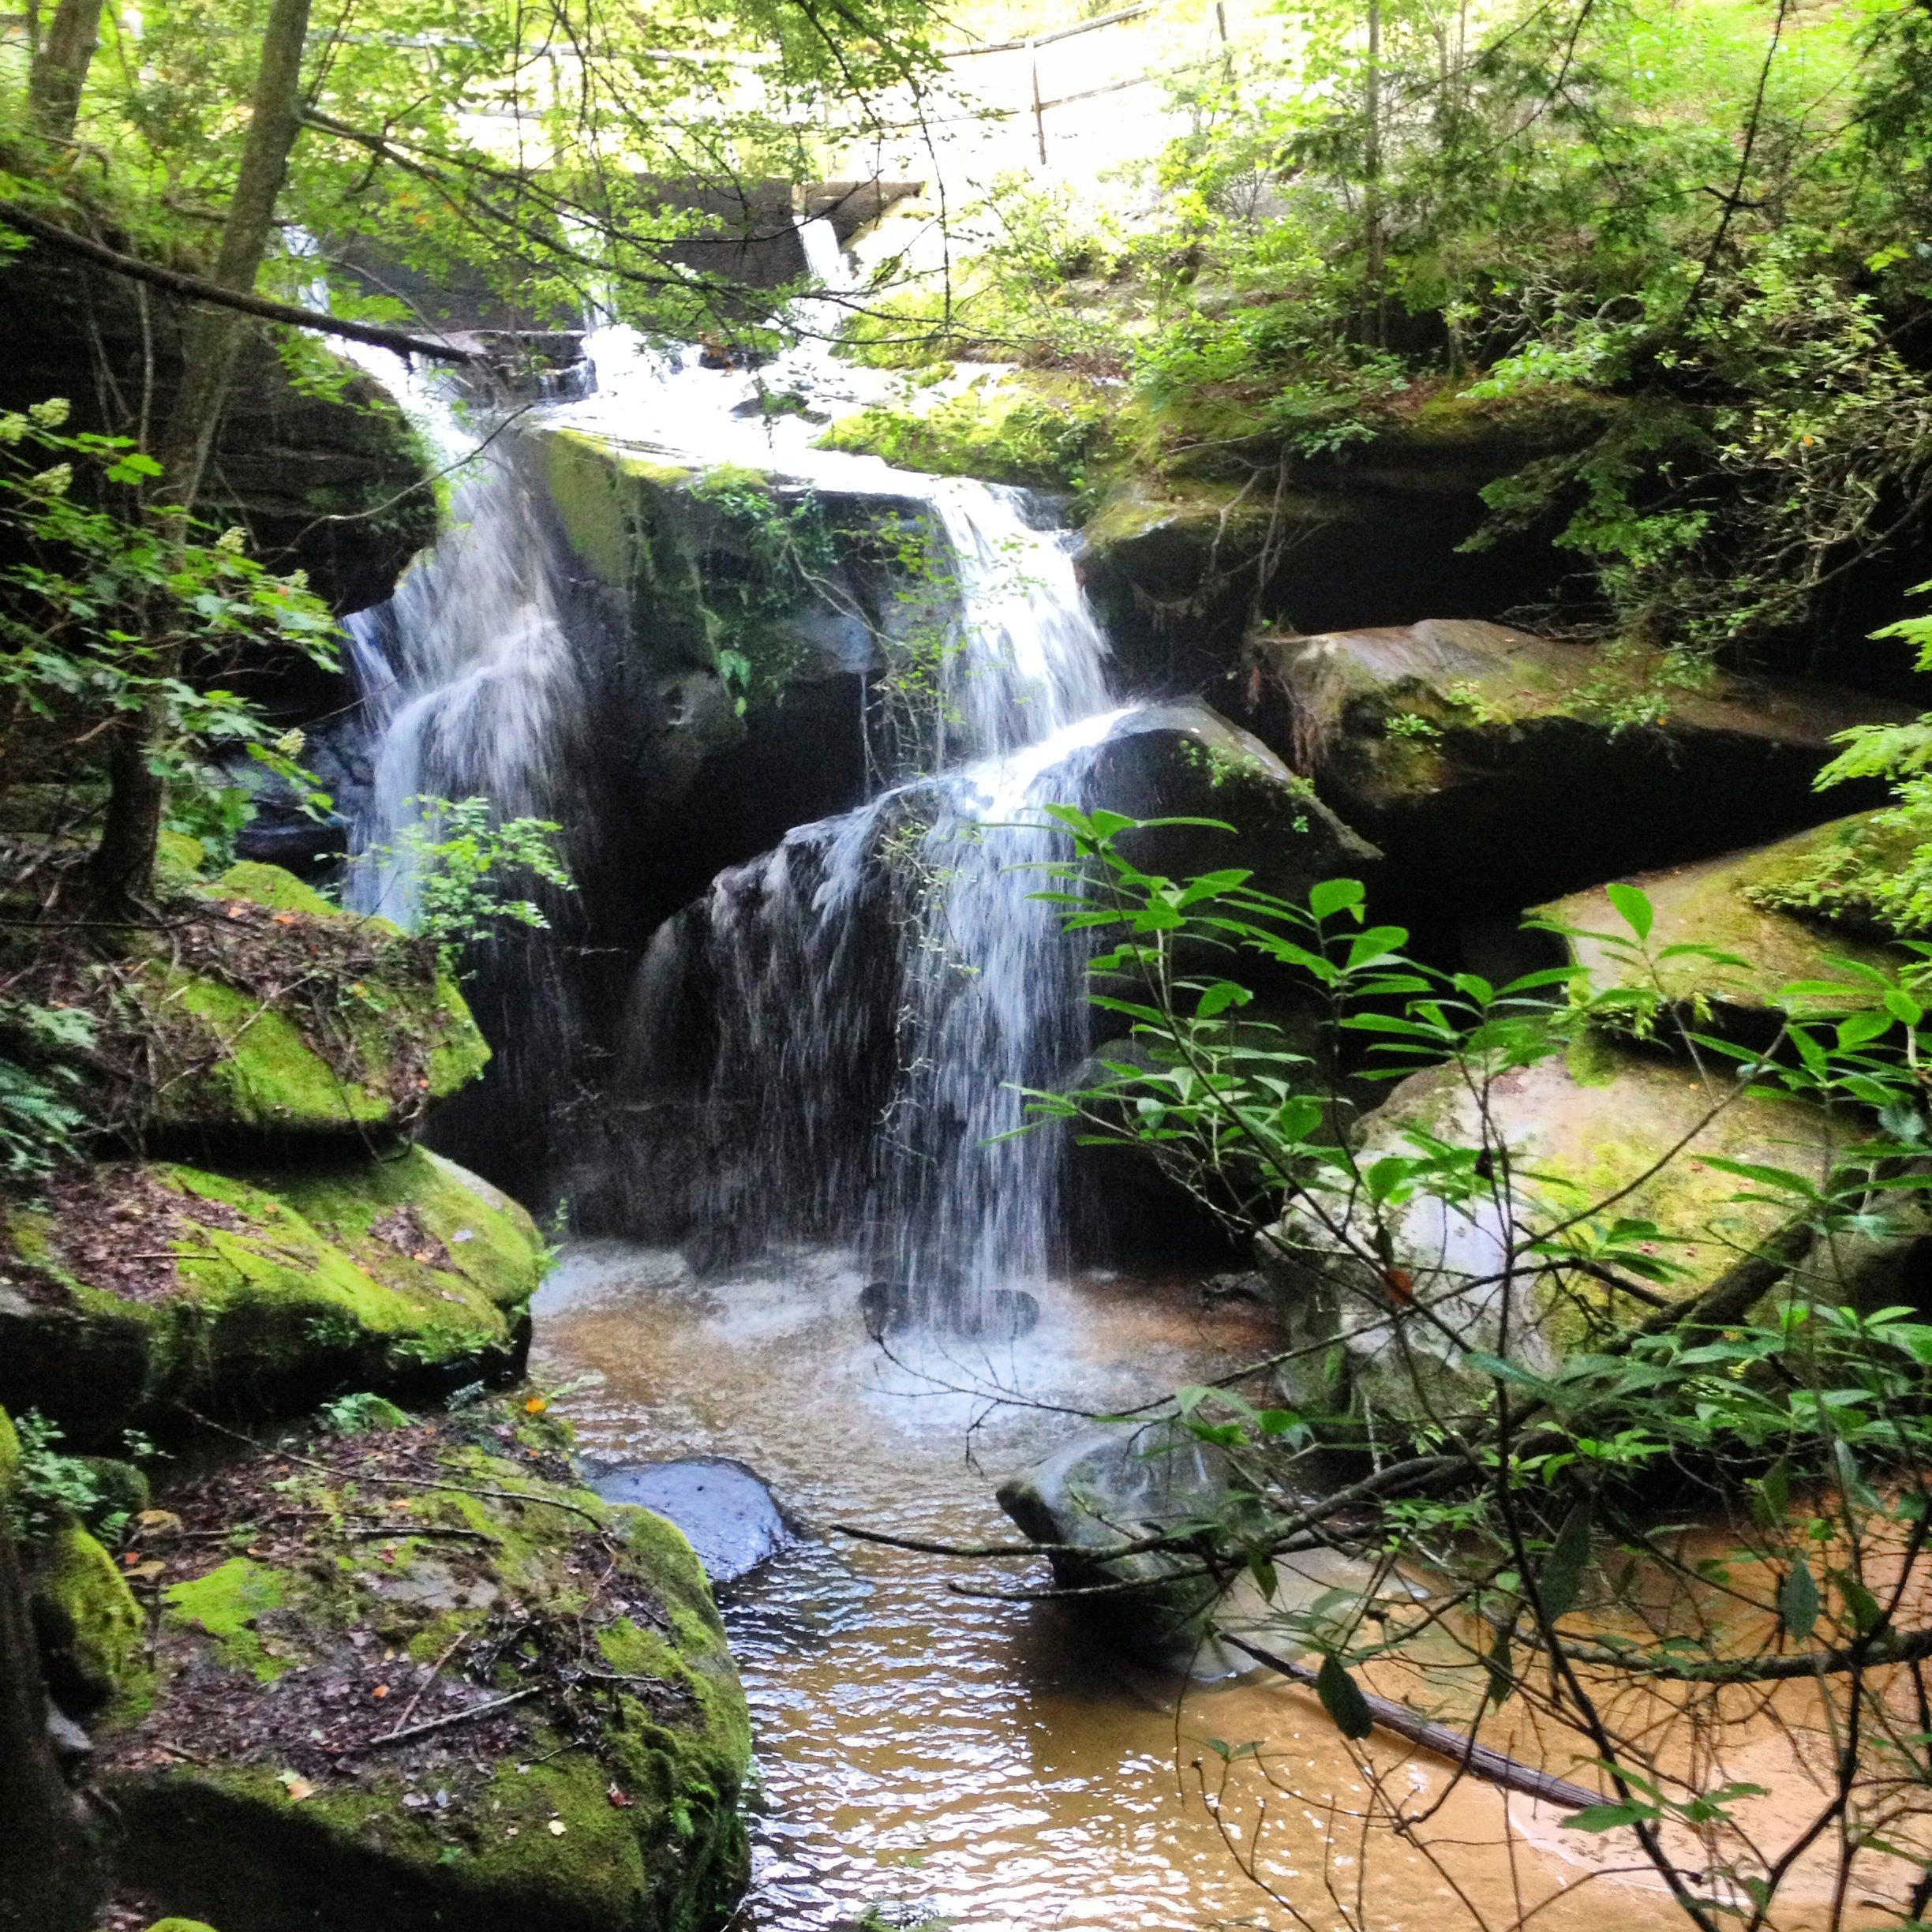 Dismals Canyon - Phil Campbell, AL: one of the few places where dismalites can be found, and where the Chickasaw Indians were held captive before embarking on the Trail of Tears.